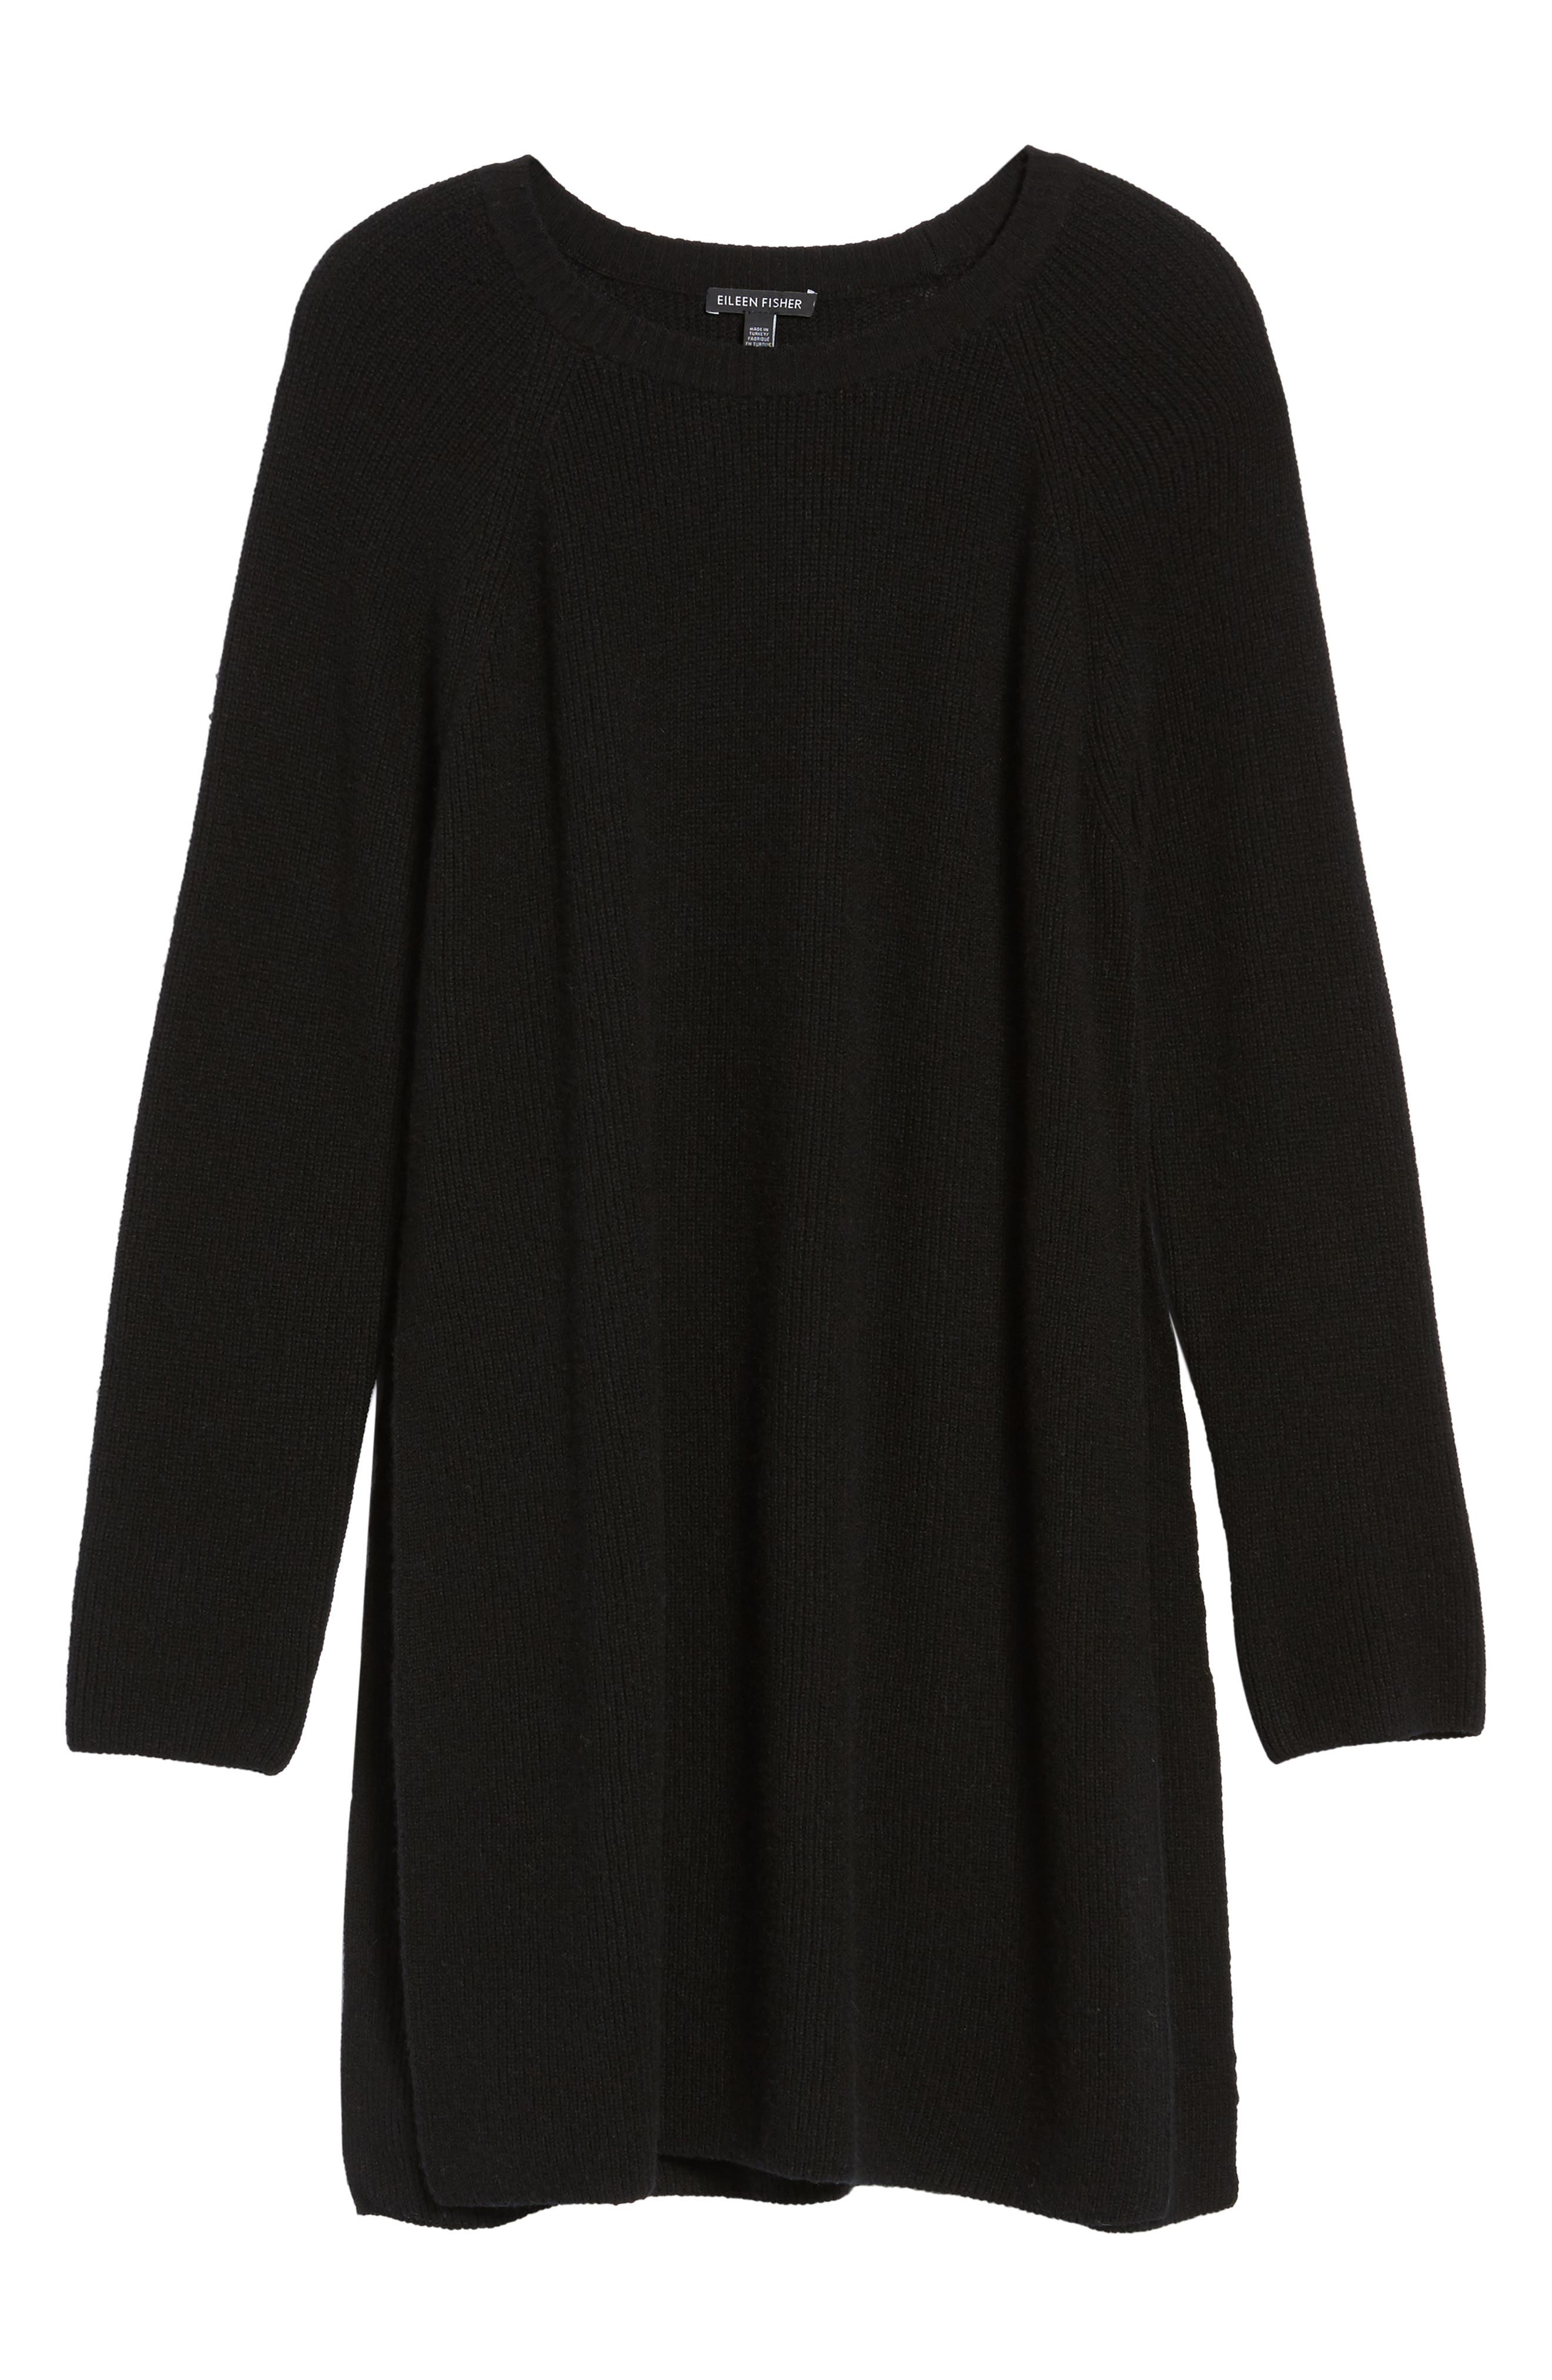 Cashmere Tunic Sweater,                             Alternate thumbnail 6, color,                             001